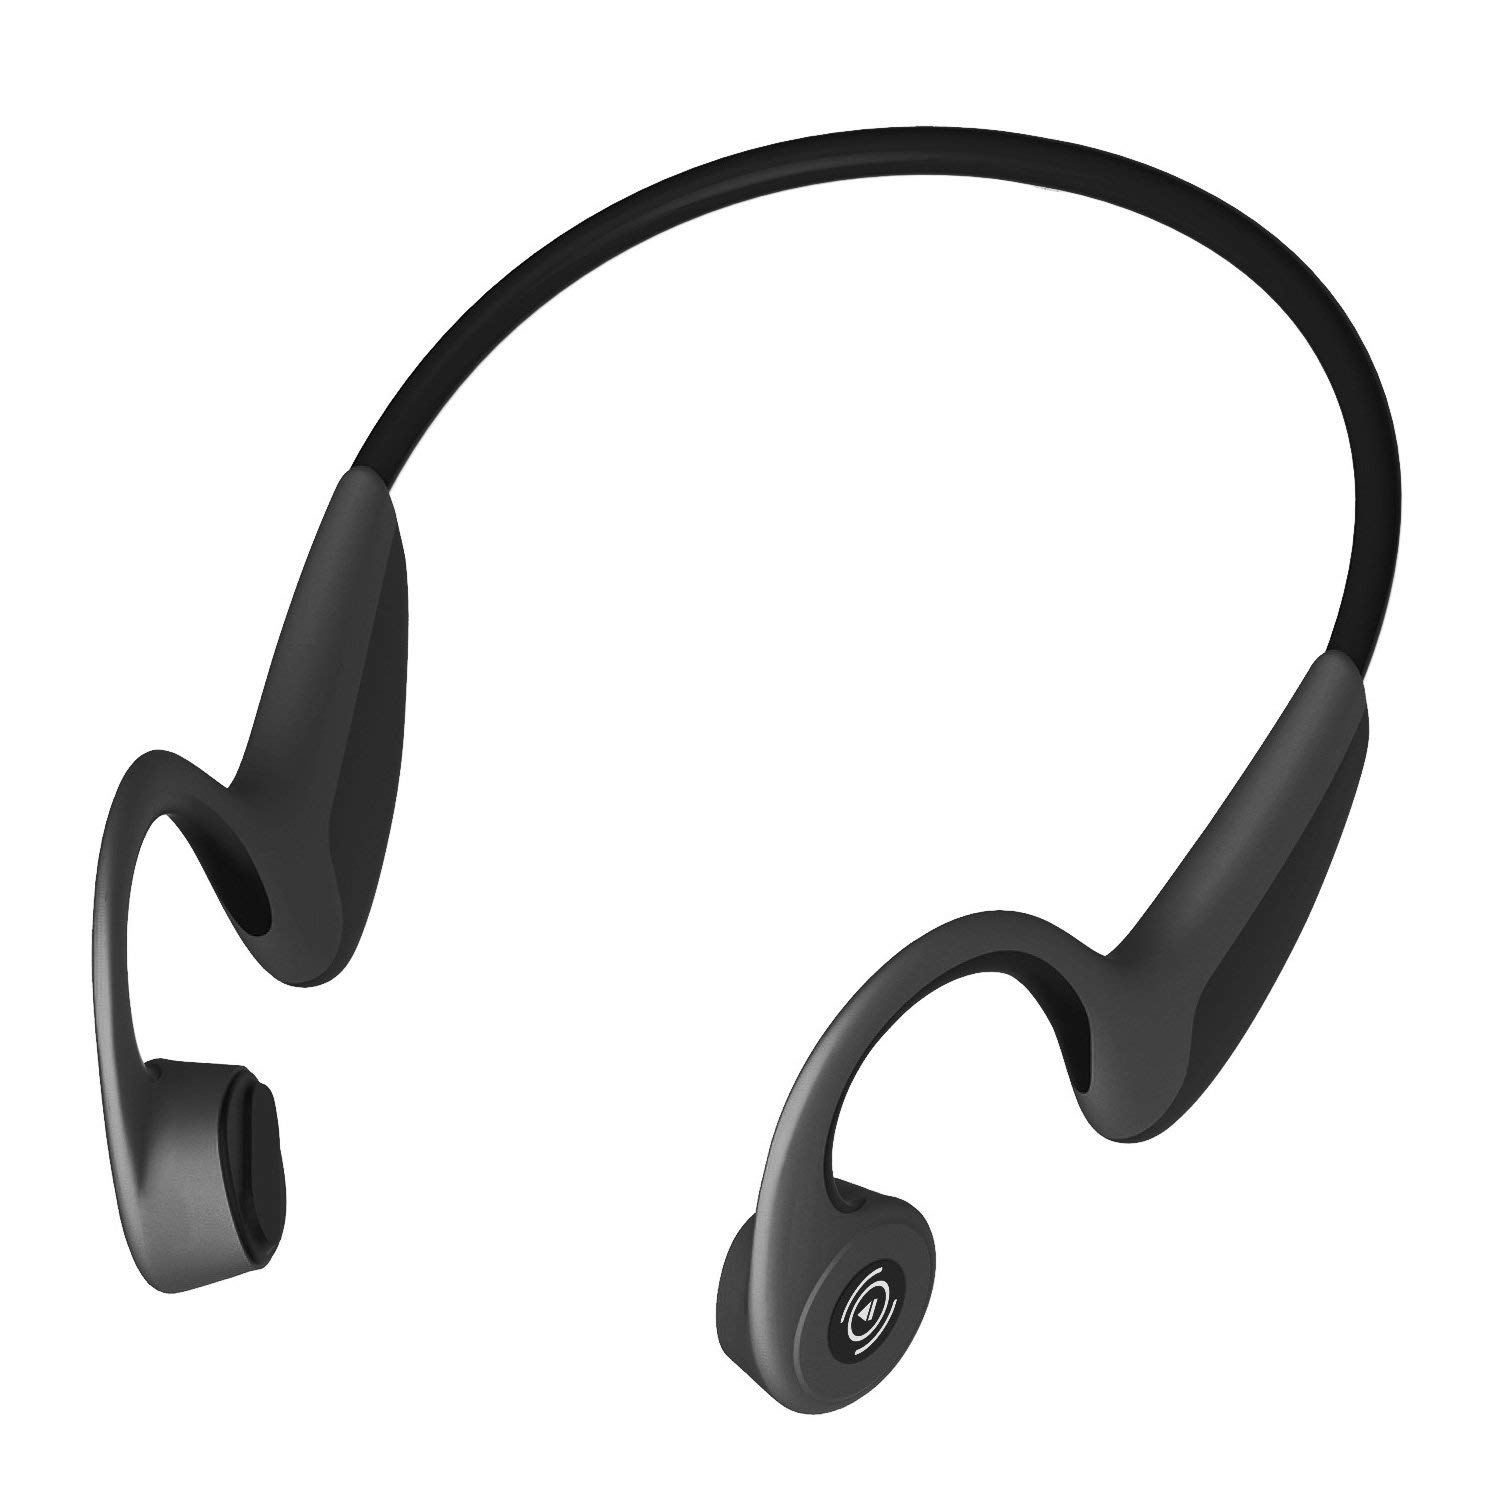 все цены на Bone Conduction Headphones Bluetooth Wireless Sports Headsets IP55 Waterproof Built In HiFi Stereo Horn Produces with Mic for